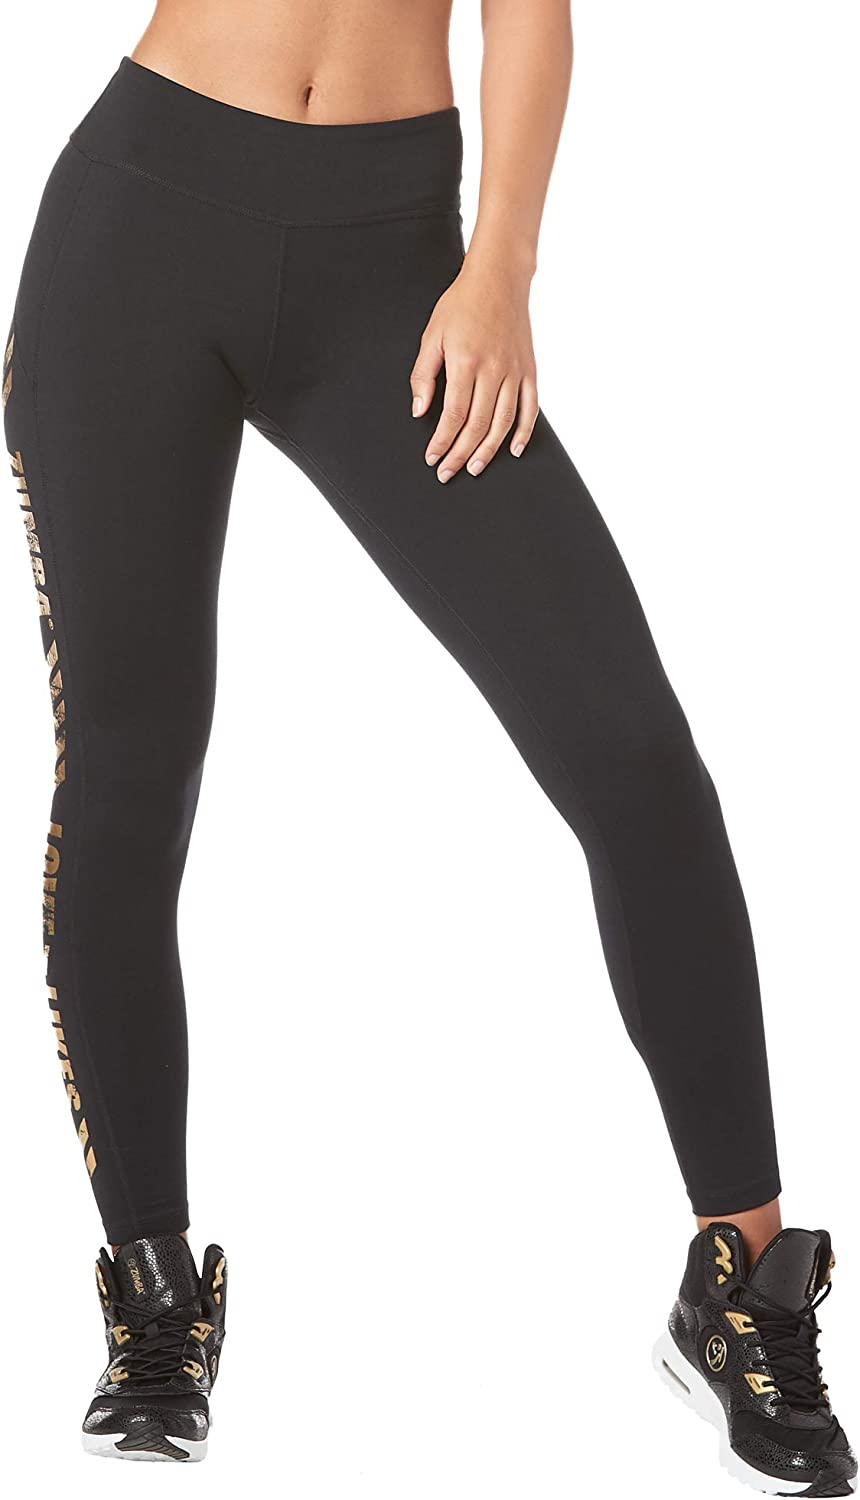 Zumba Soft Fitness Wide Waistband Workout Compression Print Leggings for Women